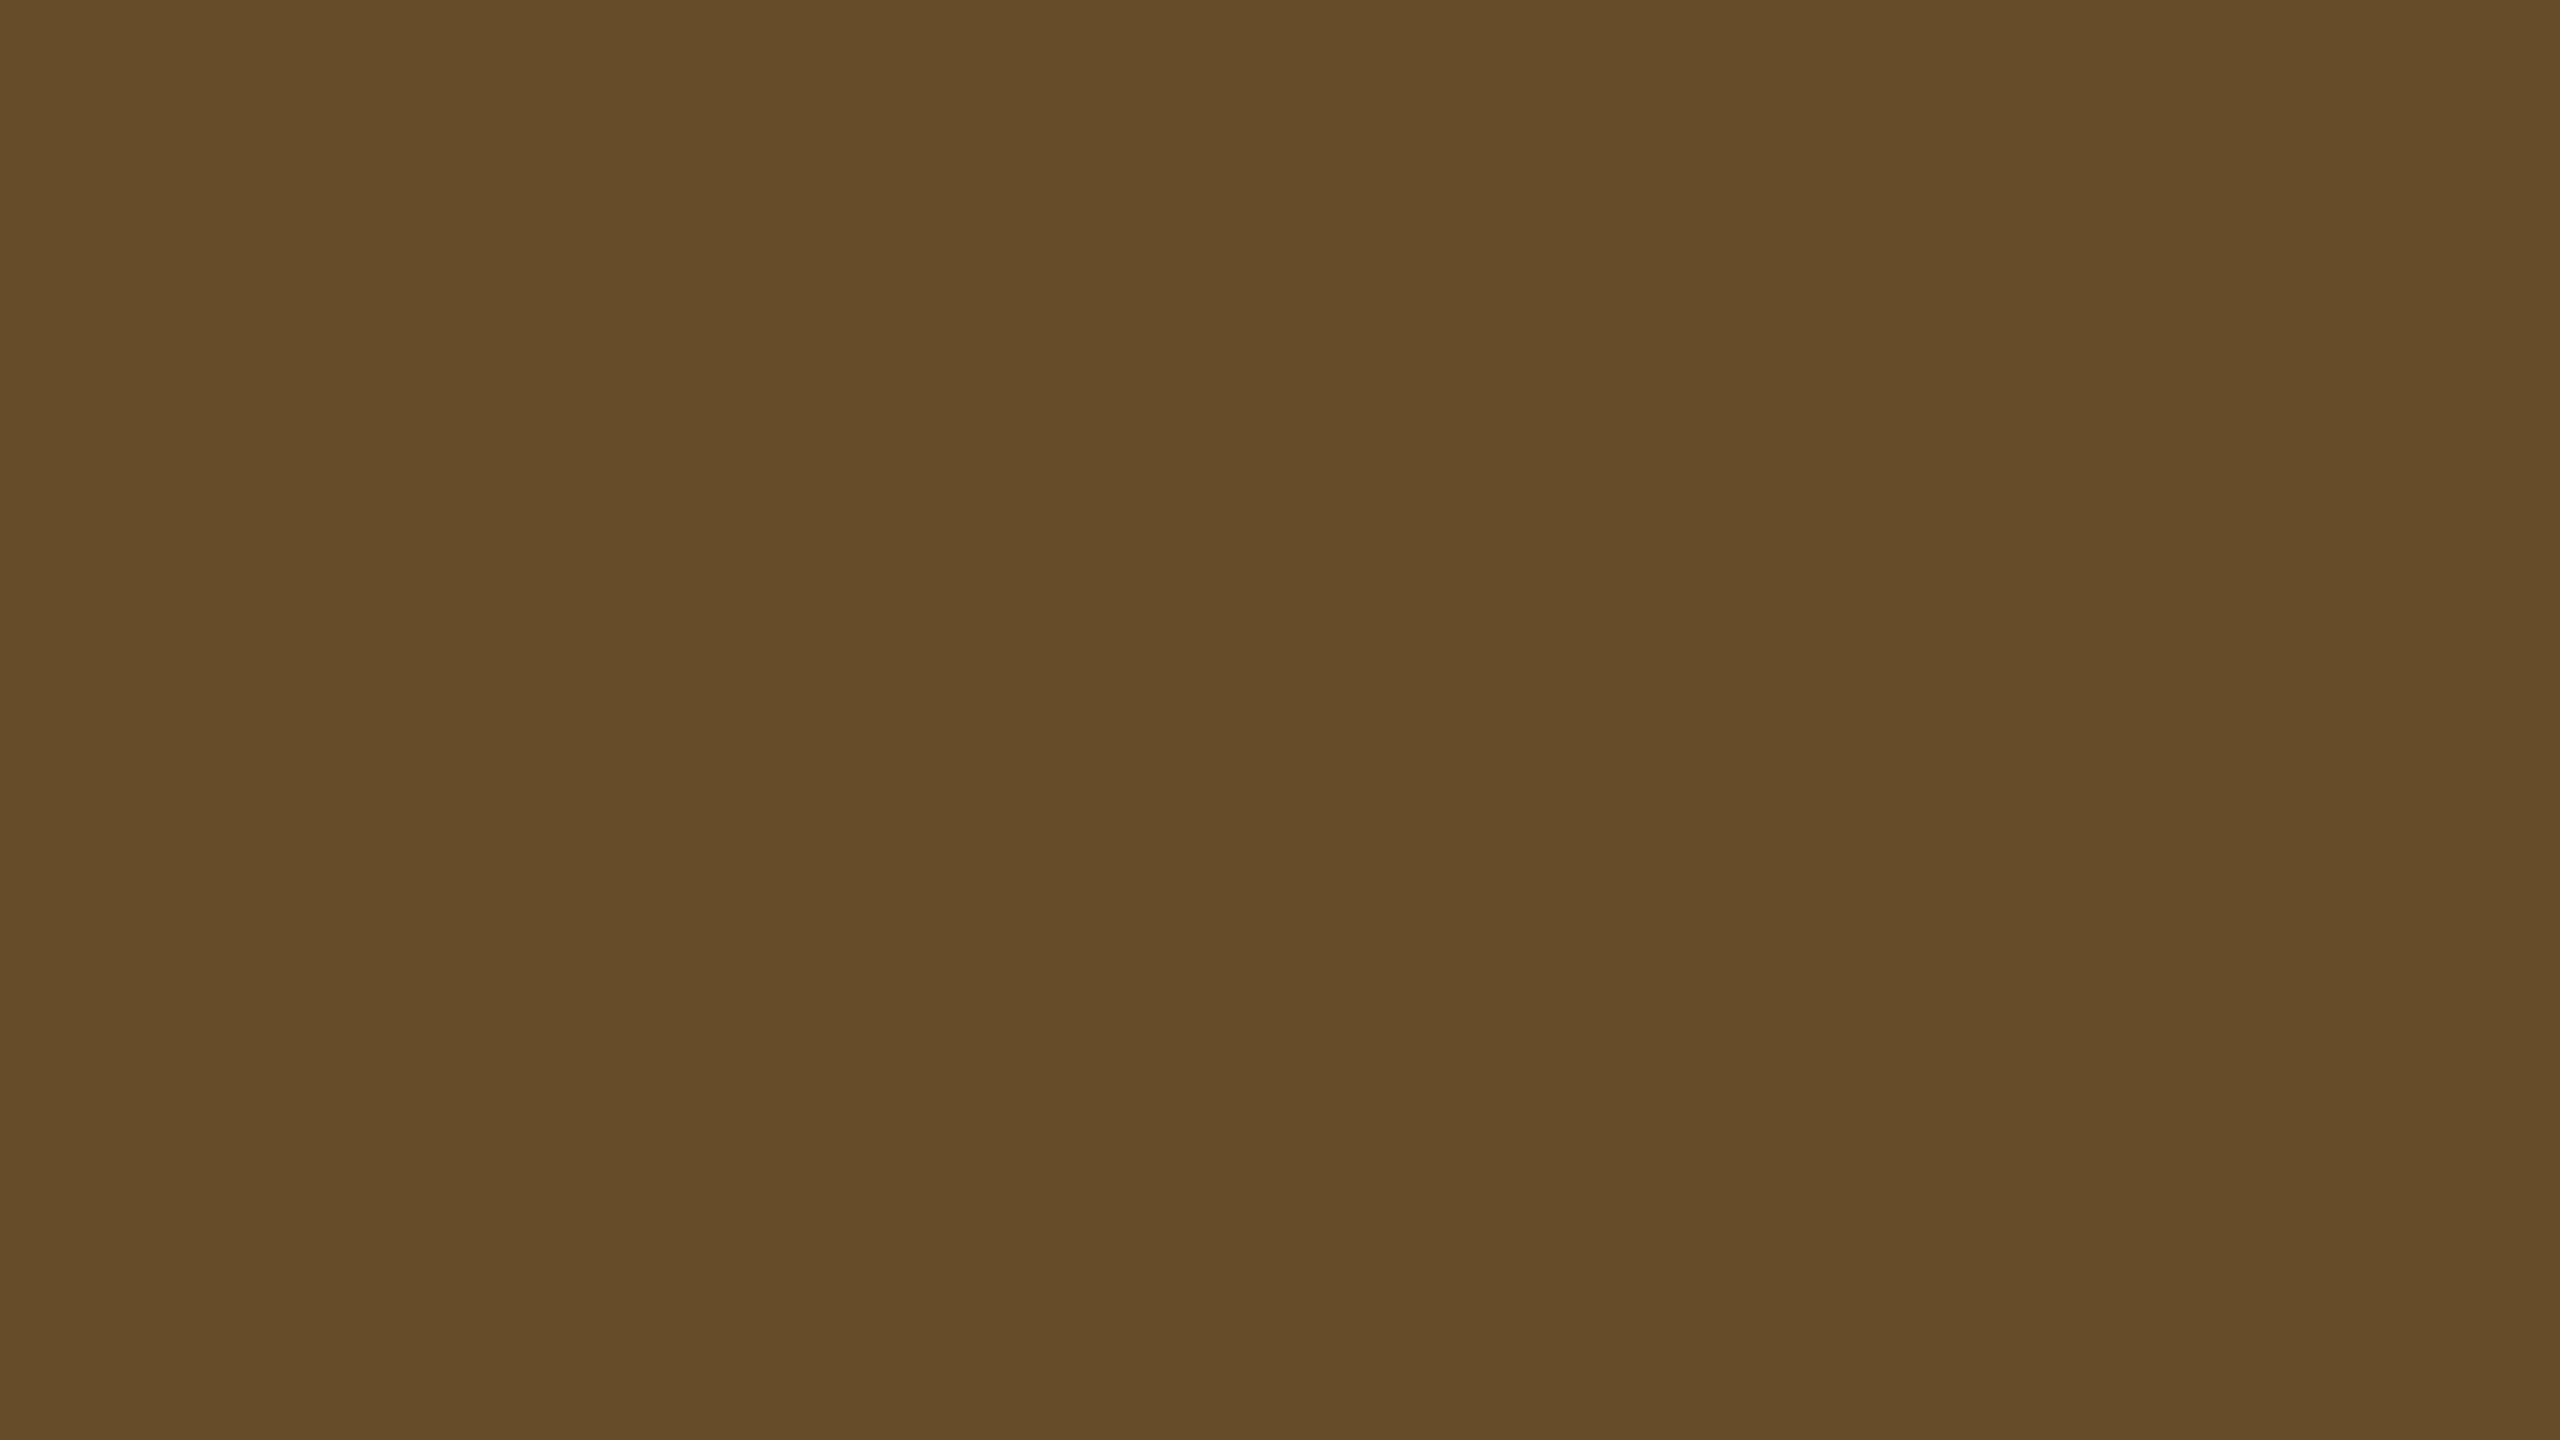 2560x1440 Donkey Brown Solid Color Background